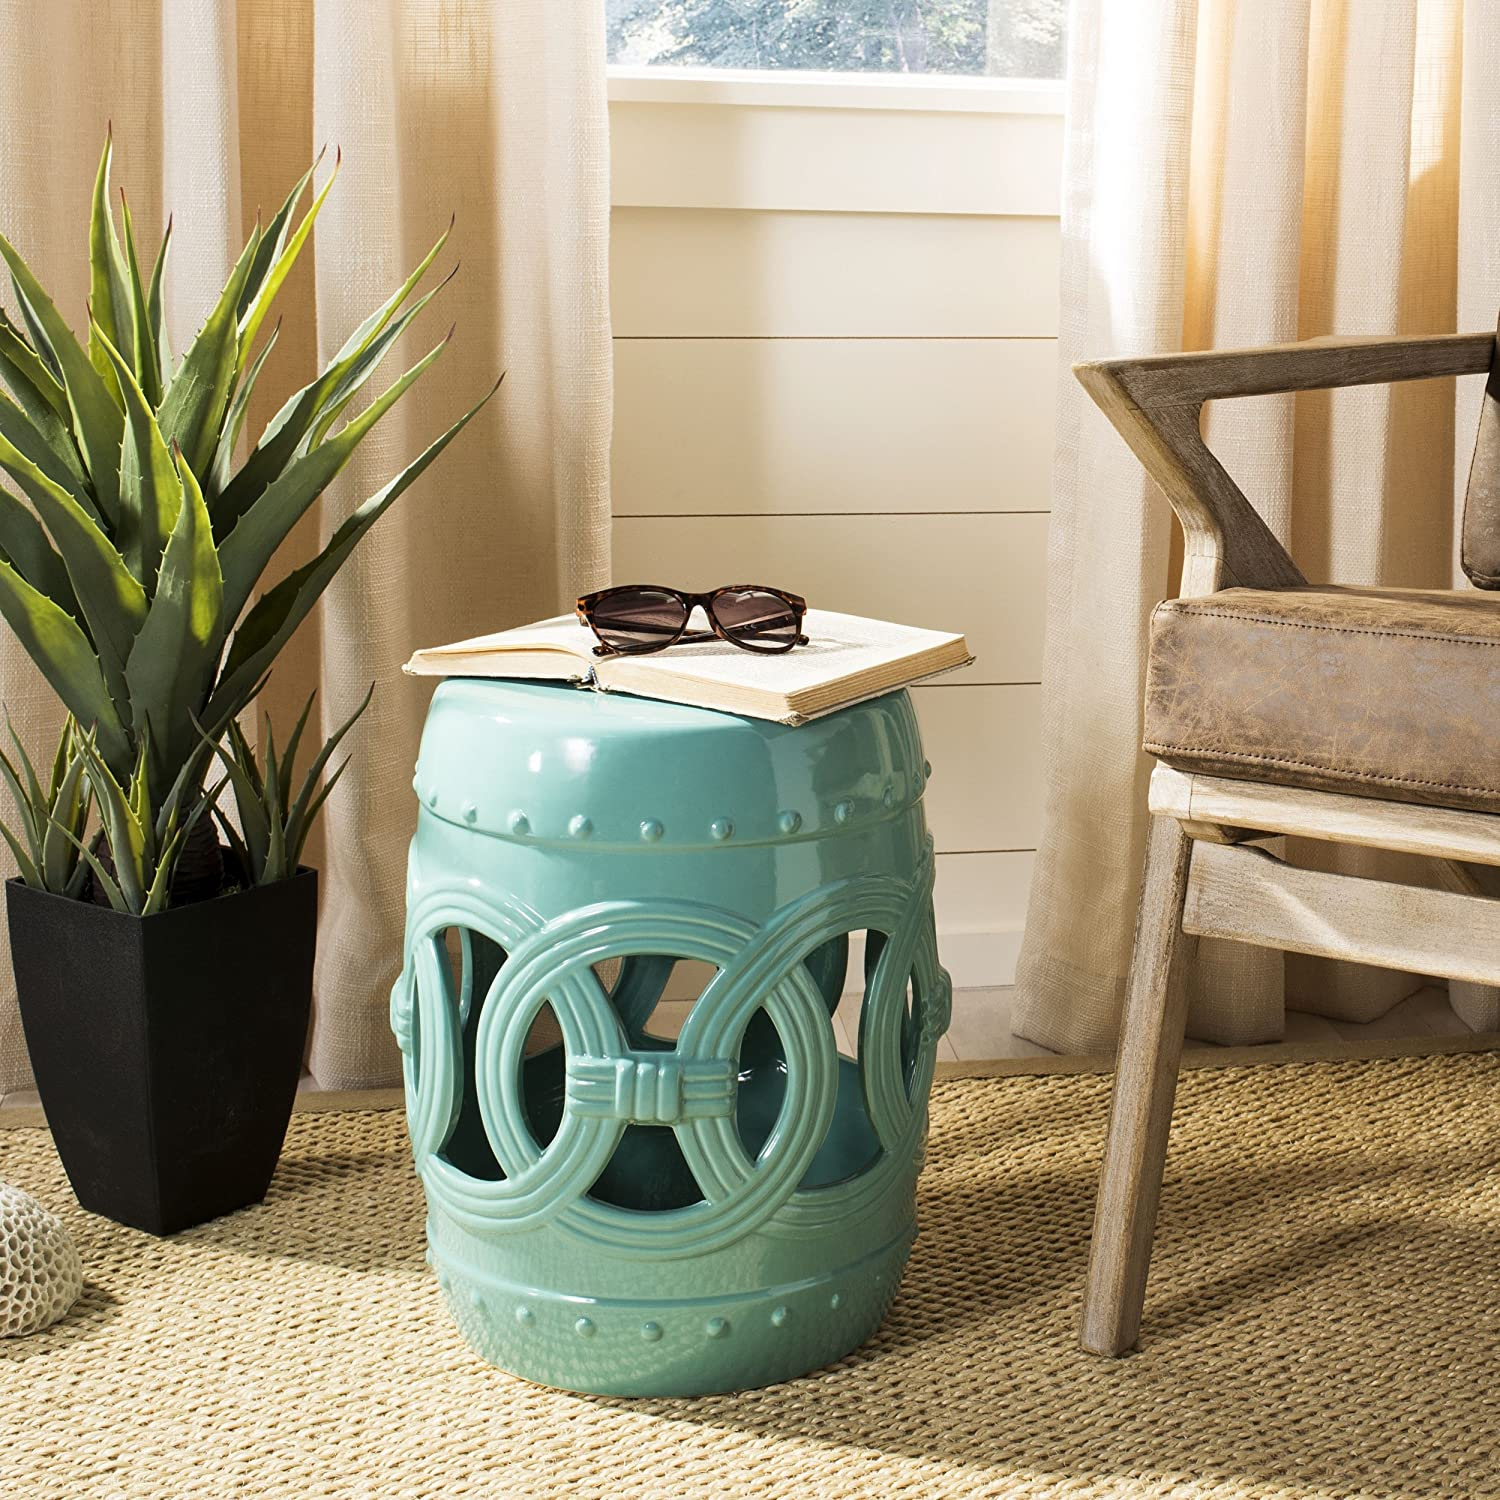 Remarkable Safavieh Castle Gardens Collection Double Coin Light Blue Ceramic Garden Stool Pabps2019 Chair Design Images Pabps2019Com